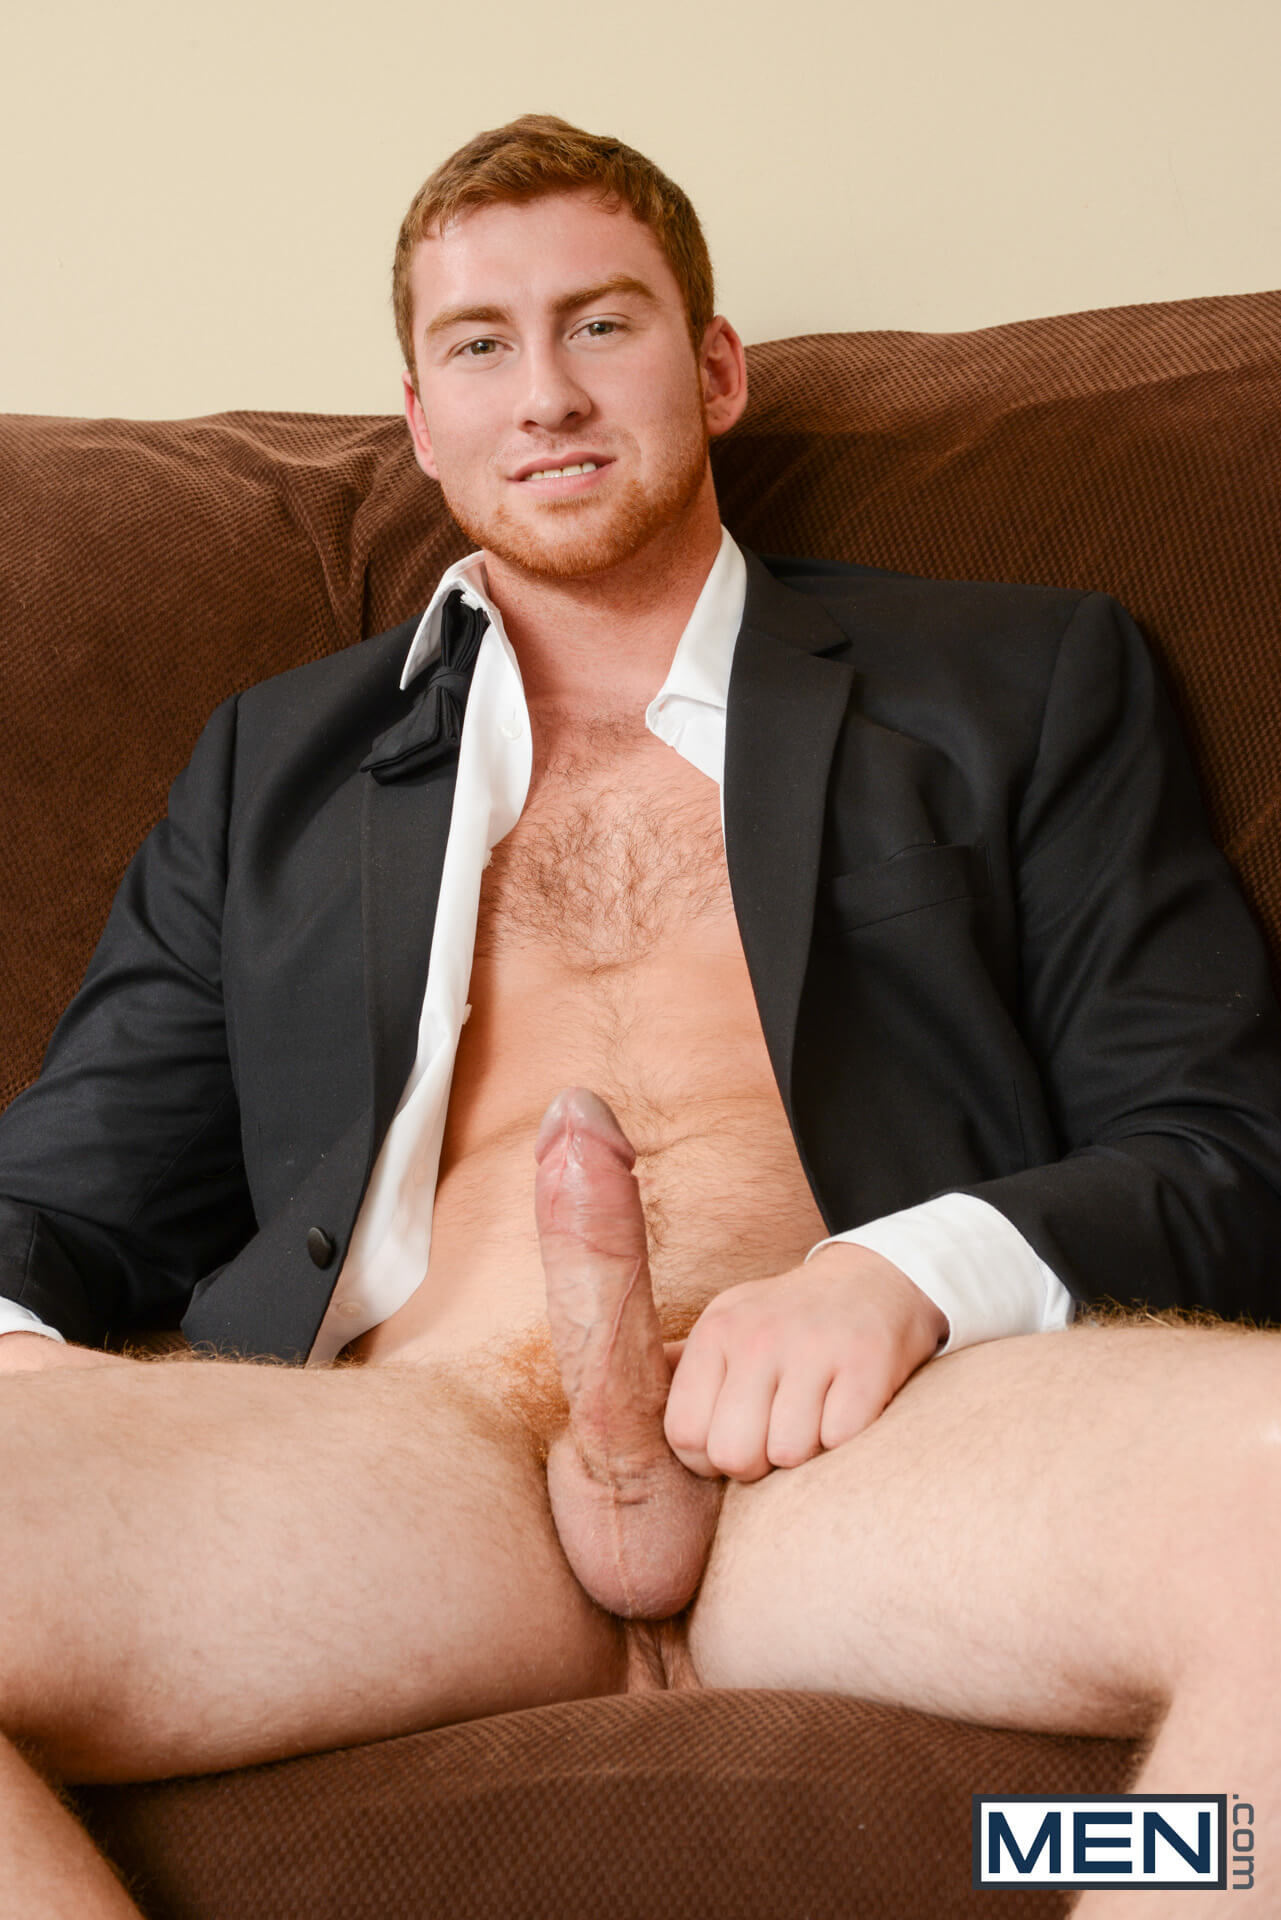 men str8 to gay the groomsmen part 2 connor maguire jj knight tommy regan gay porn blog image 5